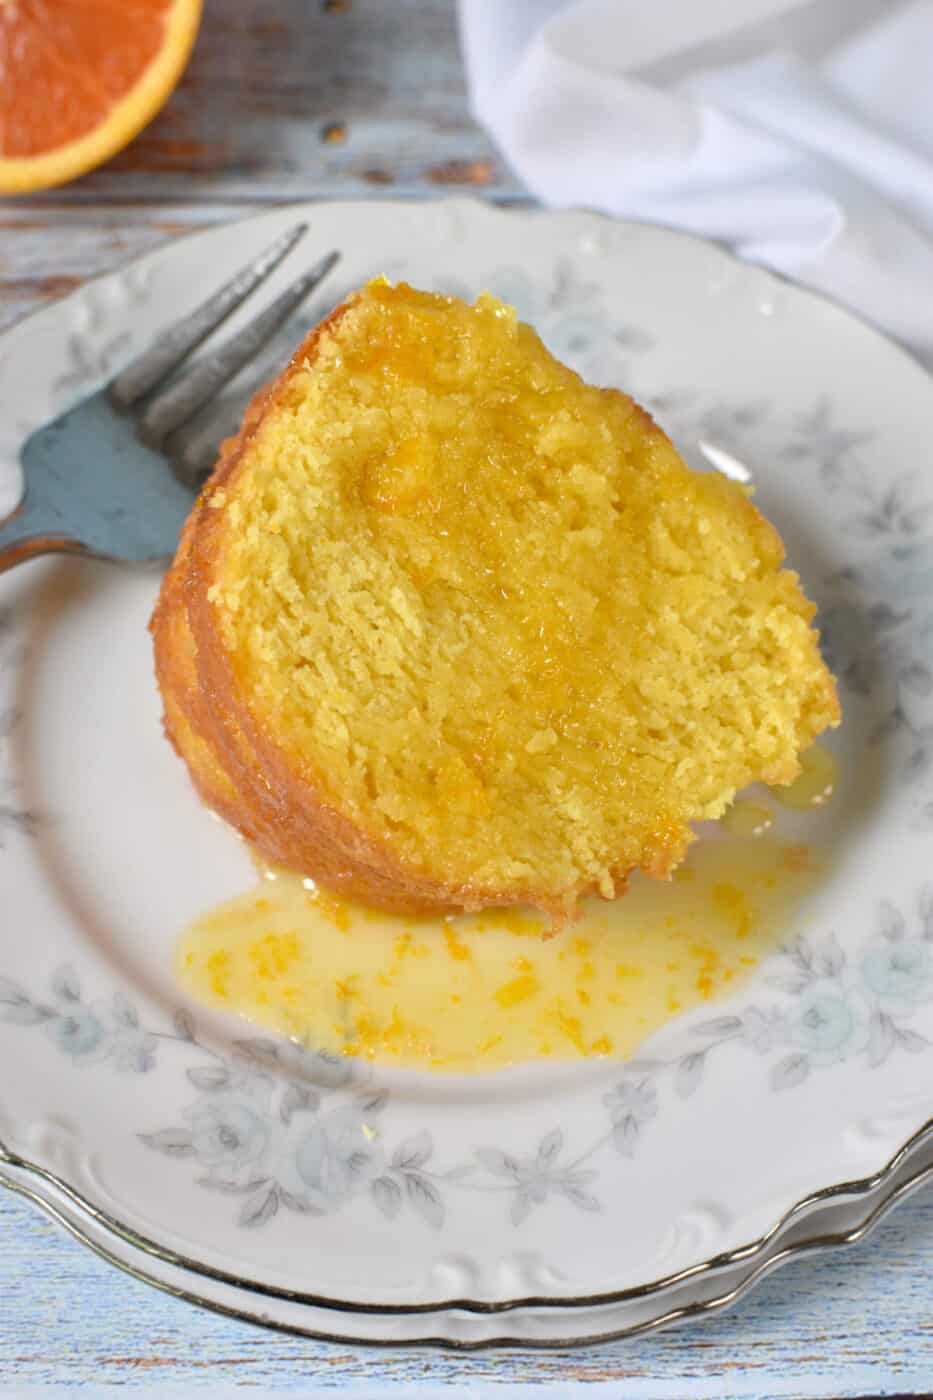 slice of orange cake on a plate with a fork